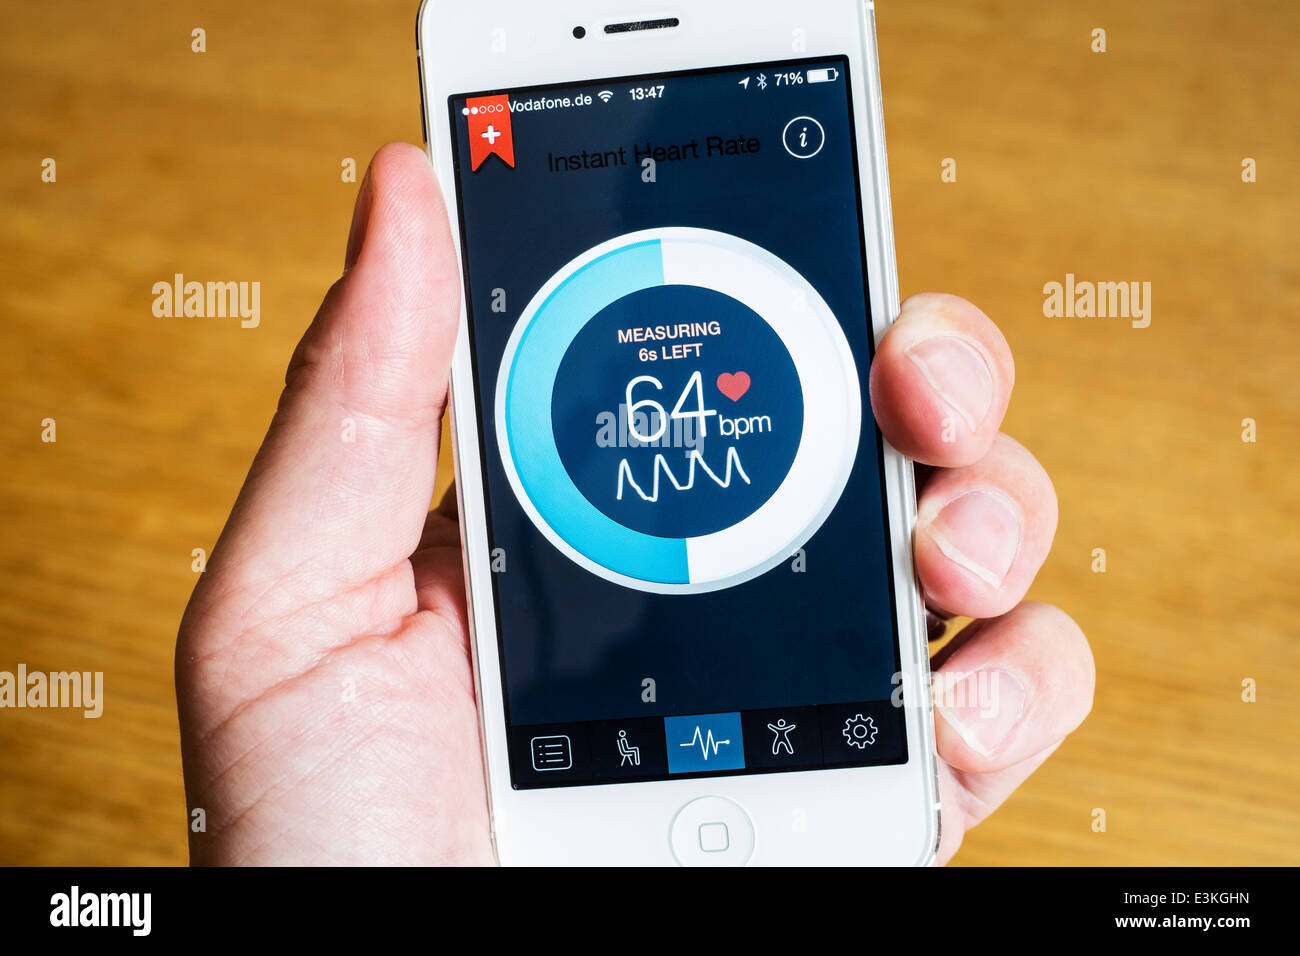 New Mobile Heart Rate Monitoring App Detects Pulse Via ...